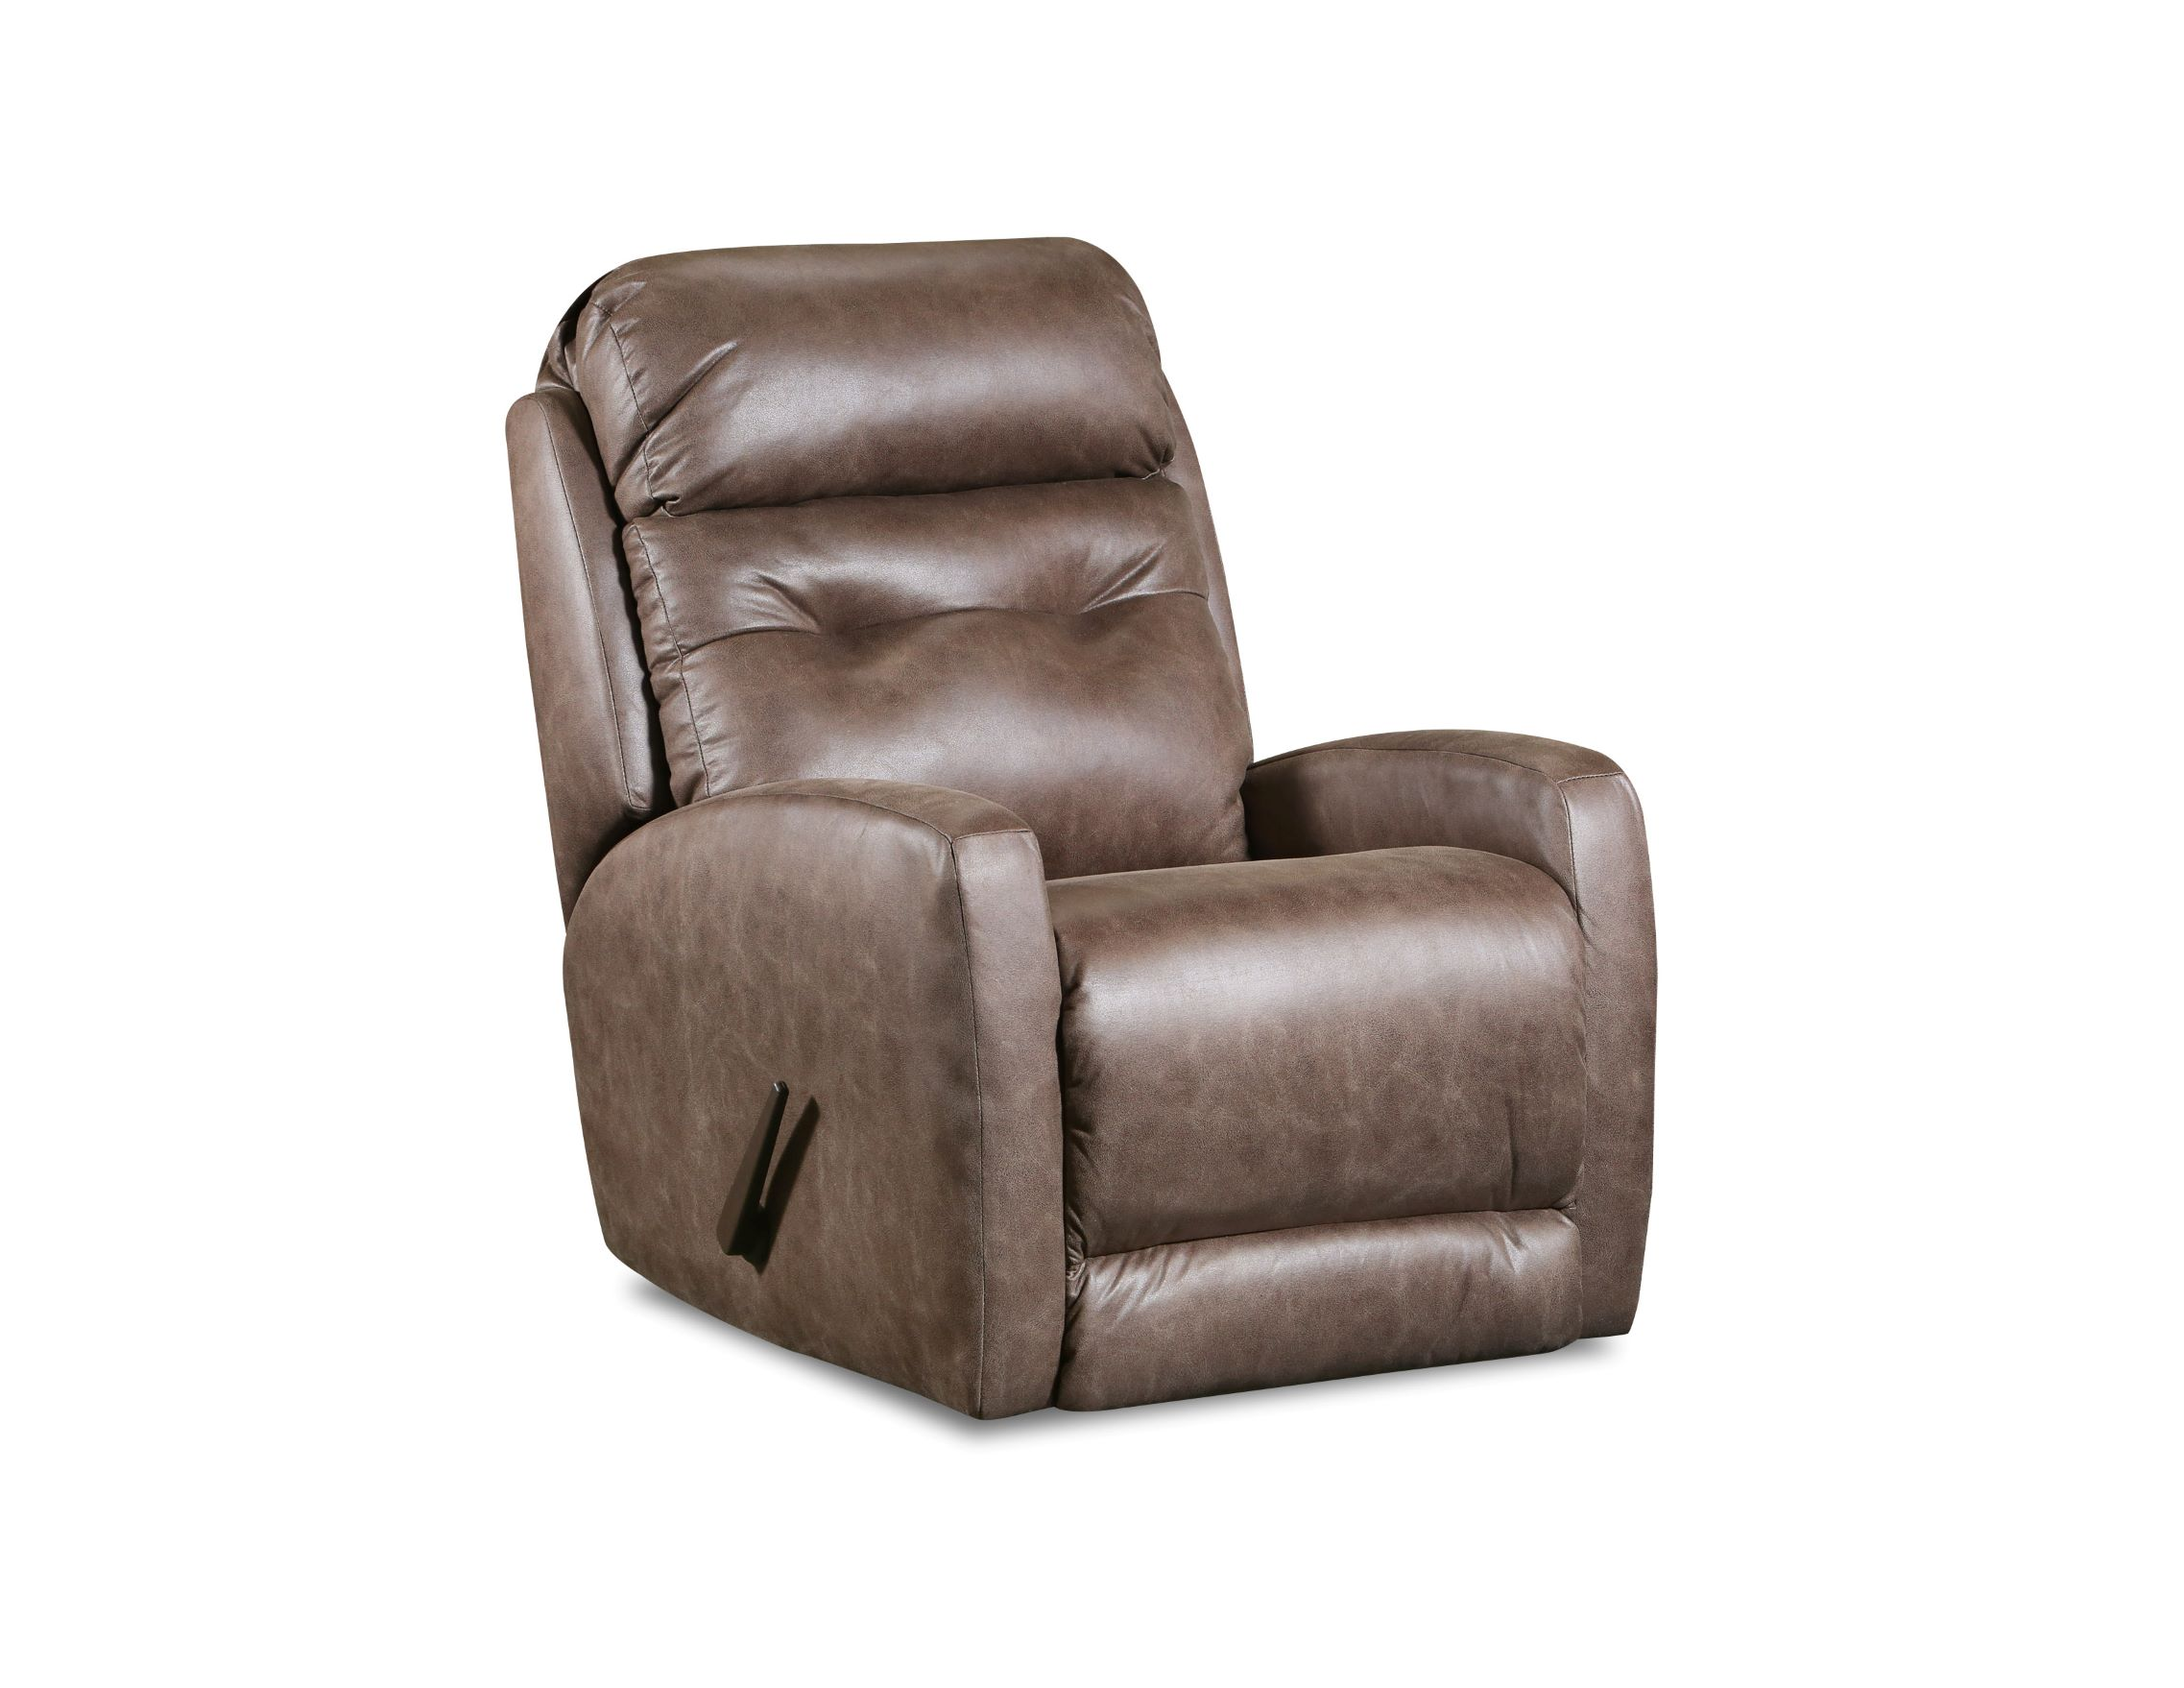 1157 Bank Shot Recliner Image